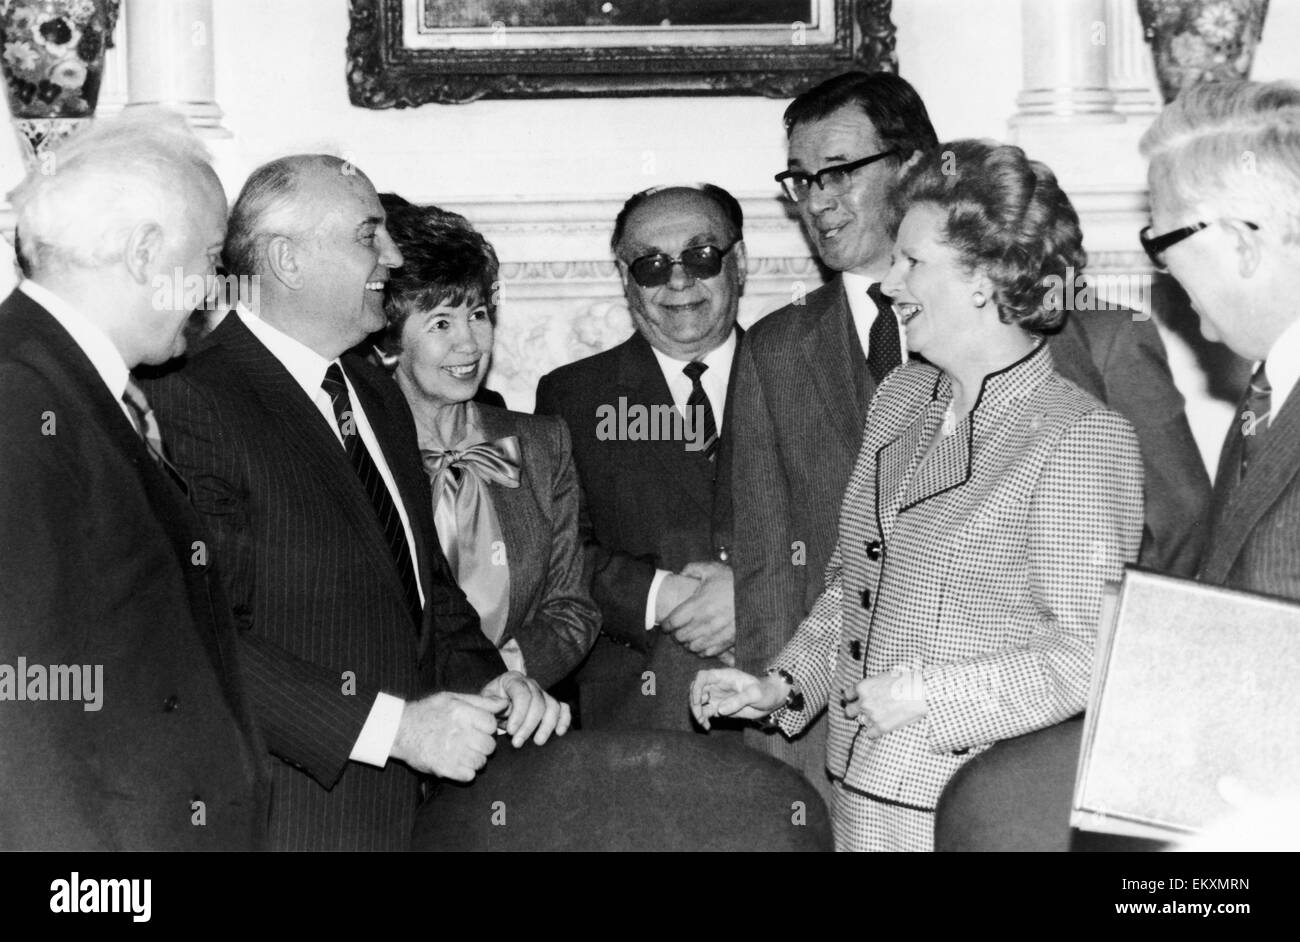 Soviet leader Mikhail Gorbachev at No 10 Downing Street with Prime Minister Margaret Thatcher 6th April 1989 Left - Stock Image